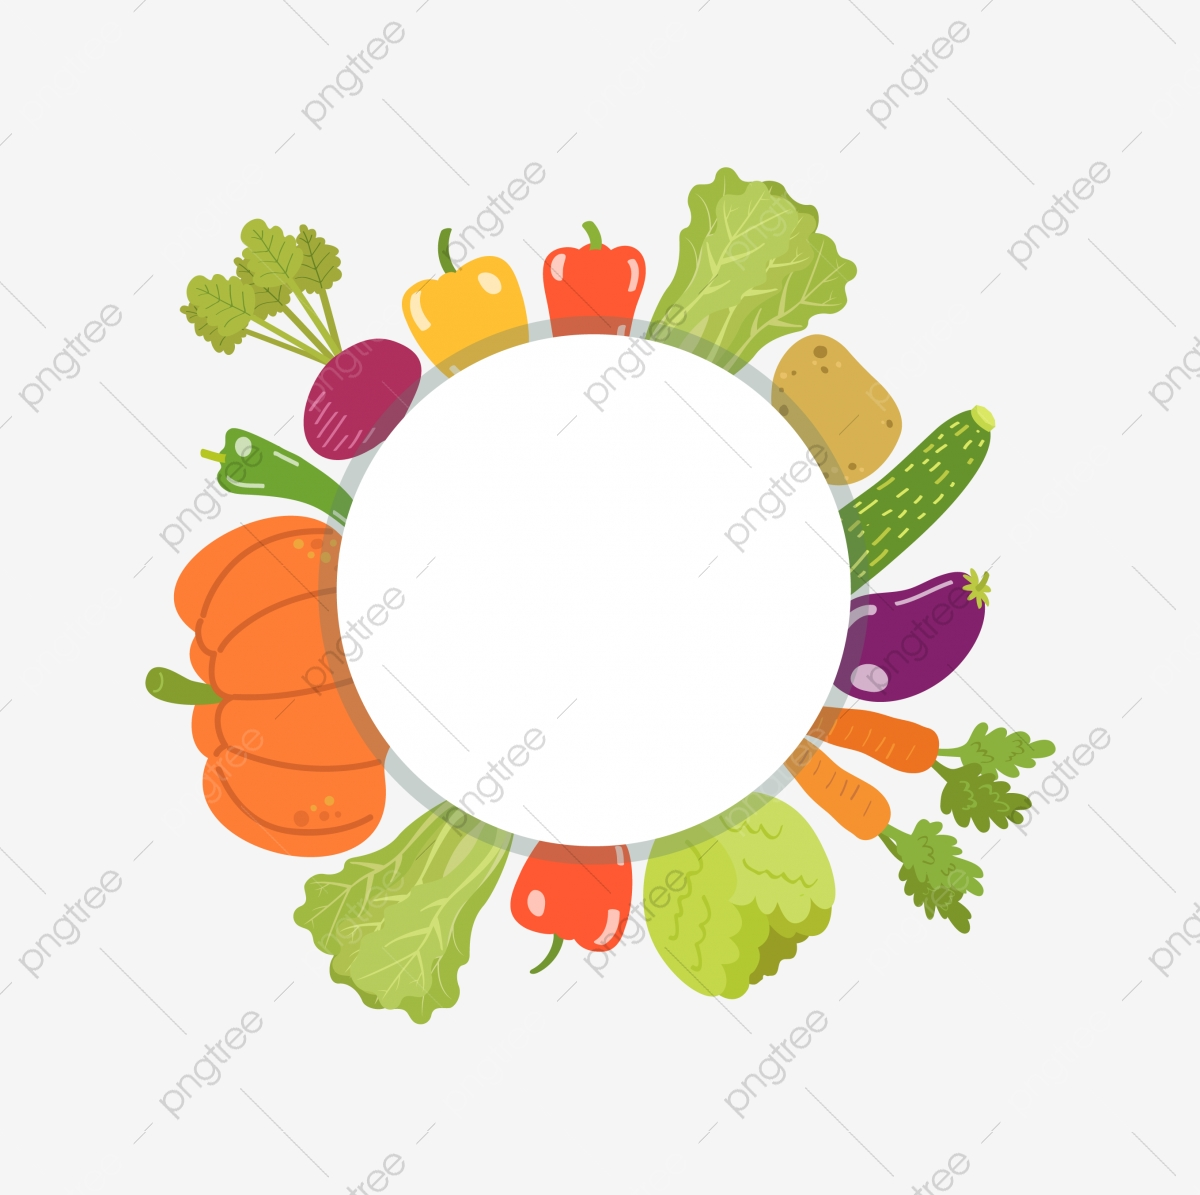 Vegetables Border Png Images Vector And Psd Files Free Download On Pngtree